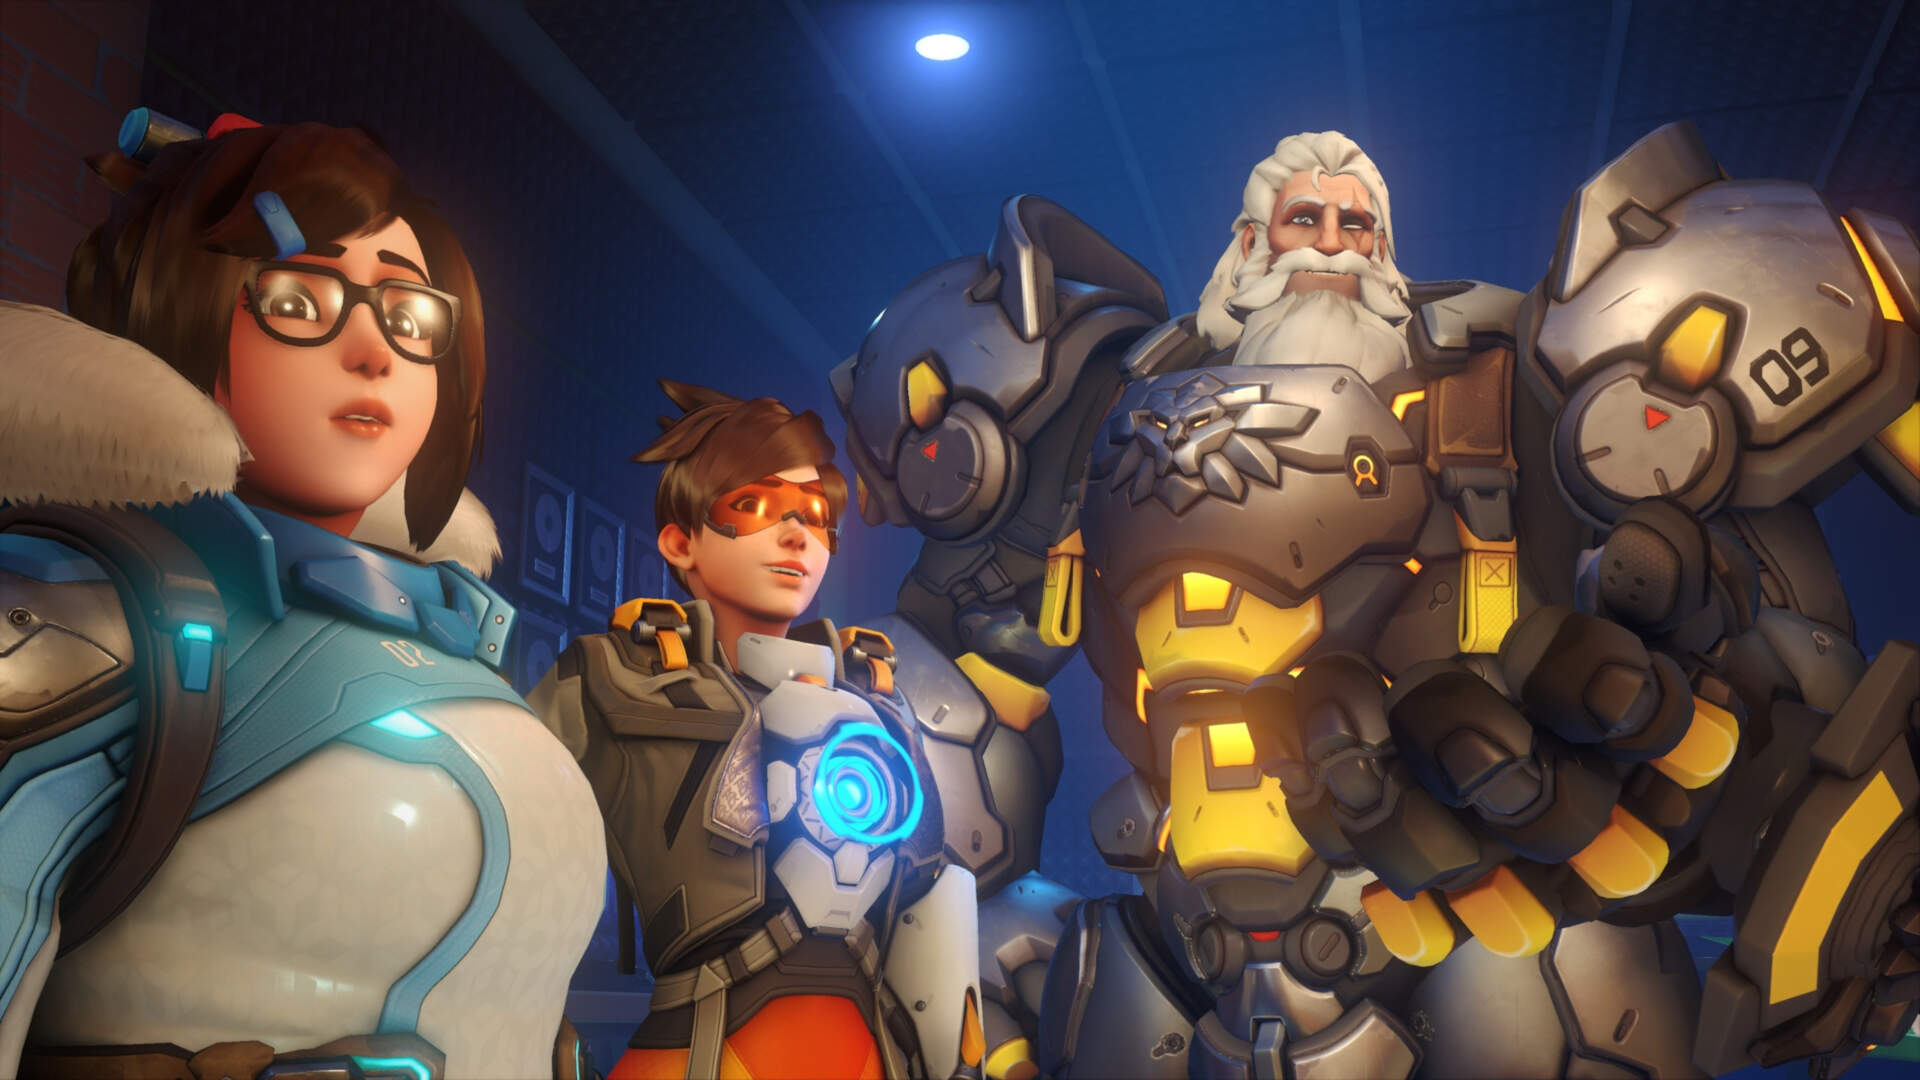 """Overwatch's Jeff Kaplan Explains Why Hero Bans Are Not a """"Silver Bullet"""""""